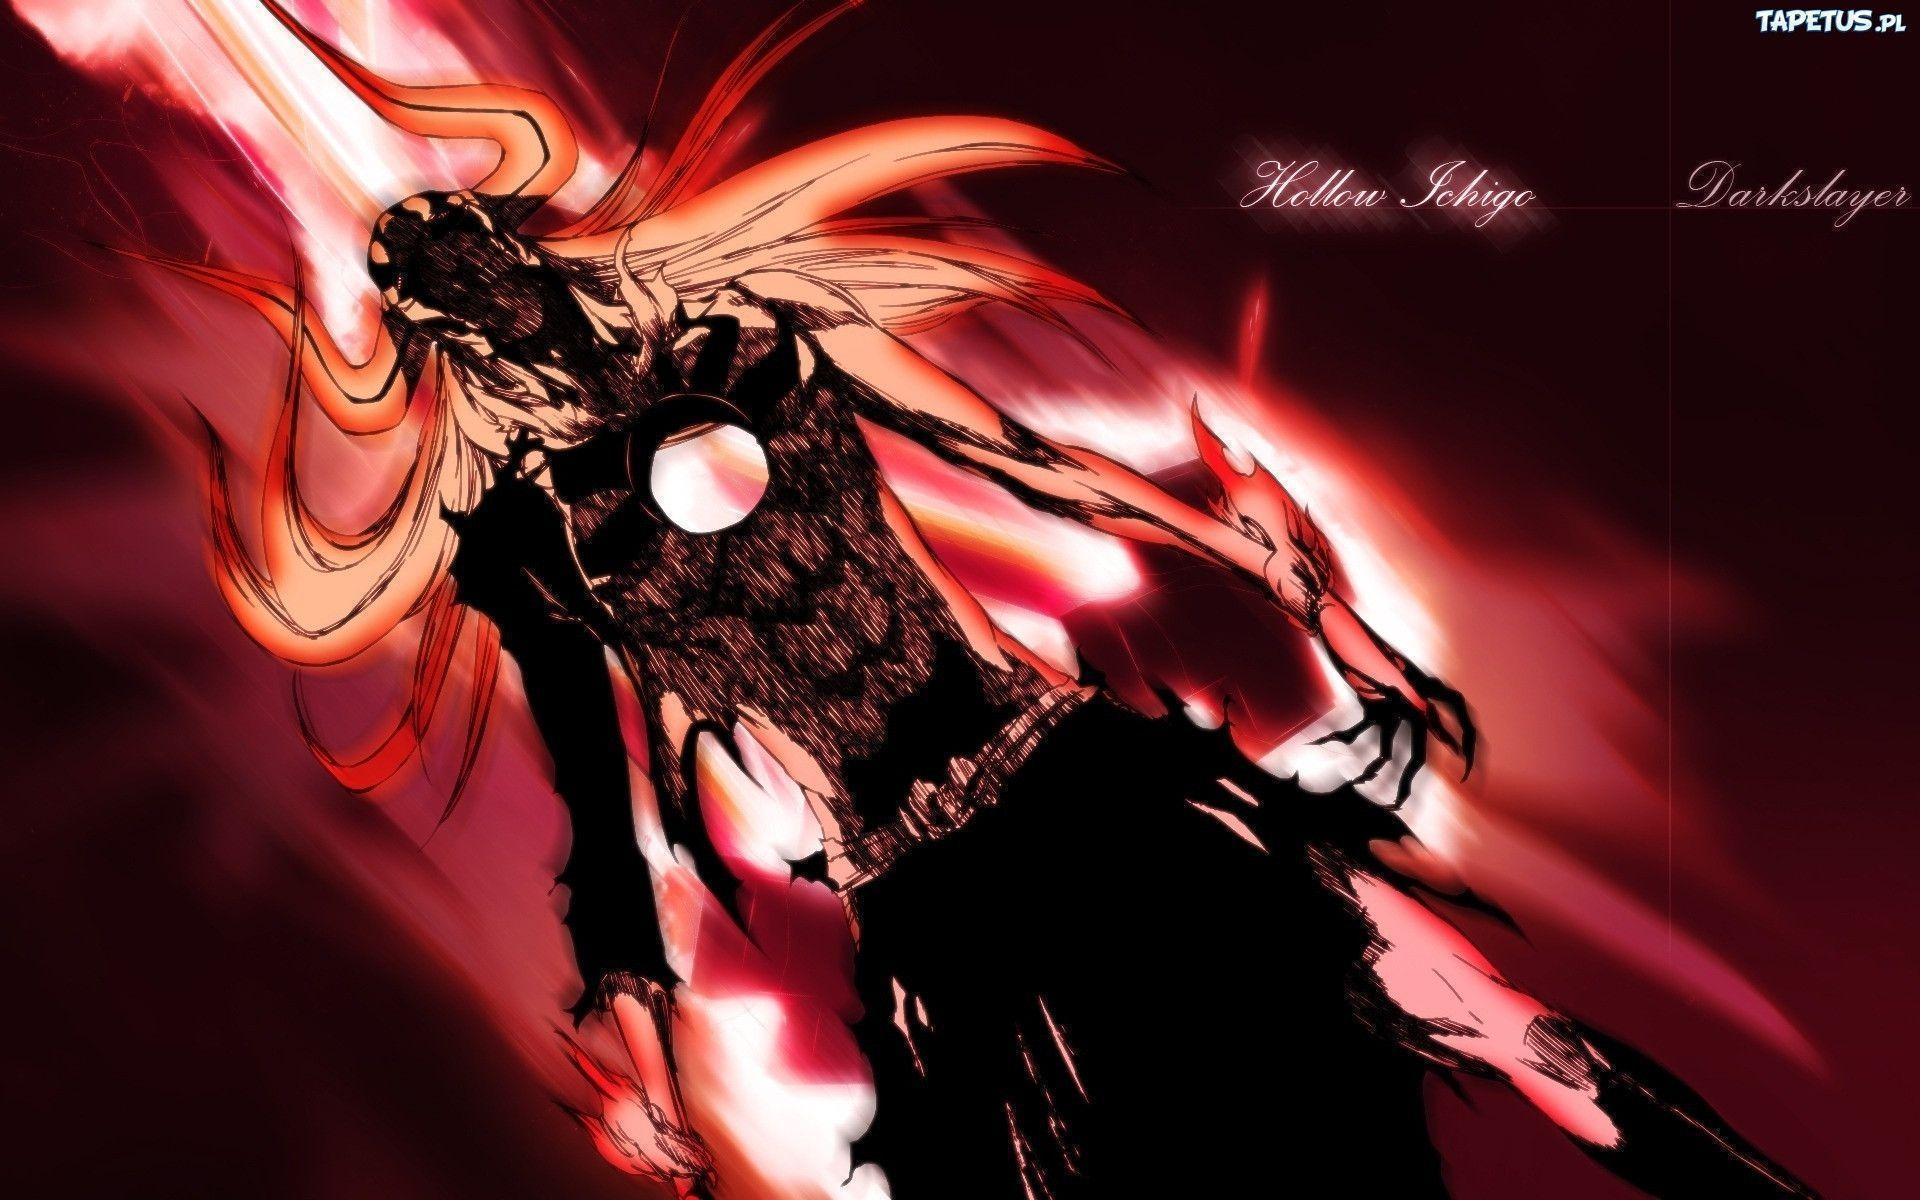 http://wallpapercave.com/wp/1A8b0e9.jpg Ichigo Hollow Wallpaper